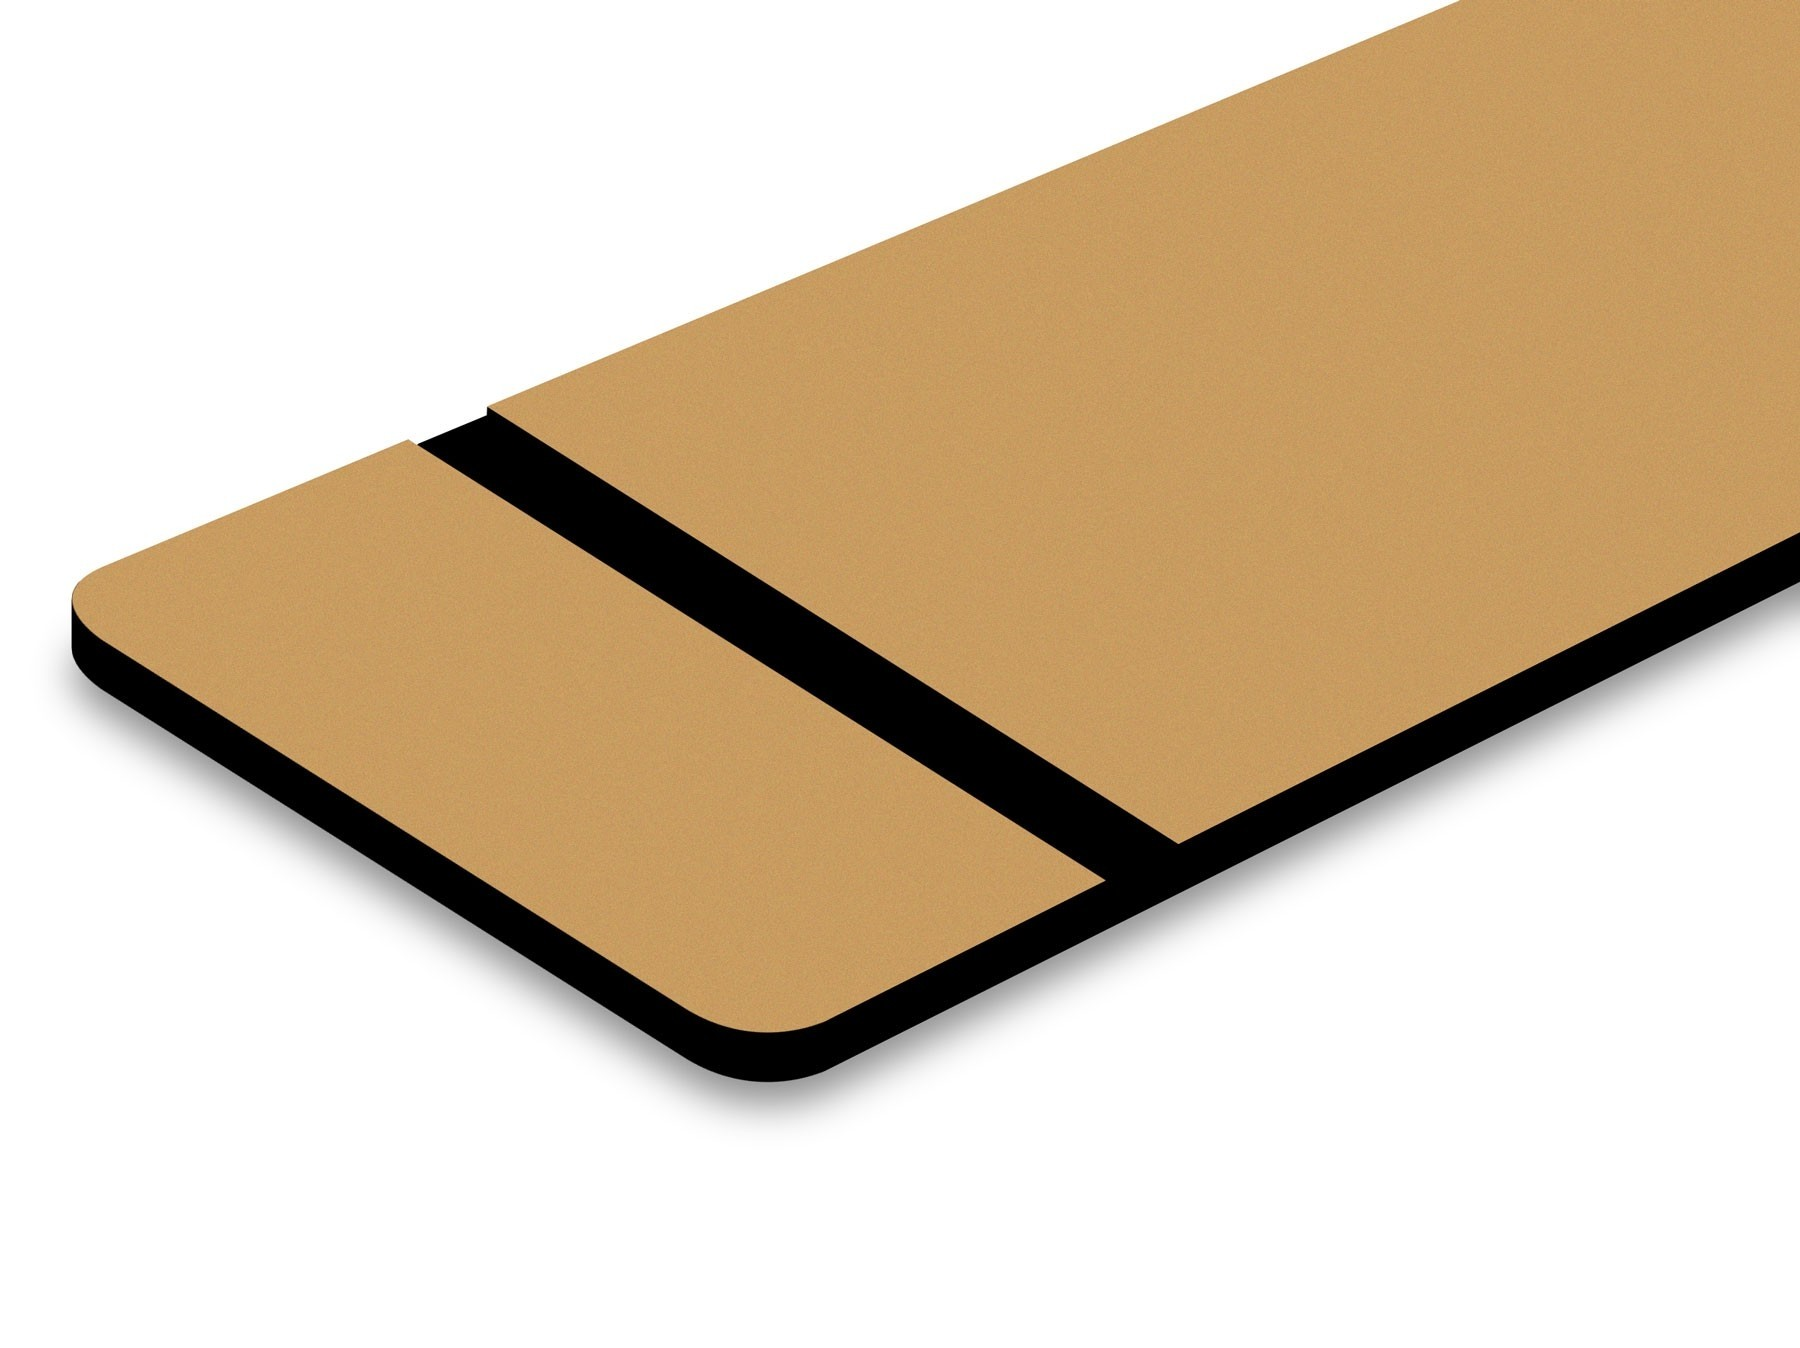 TroLase Metallic, Smooth Gold/Black, 2ply, 1.6 mm